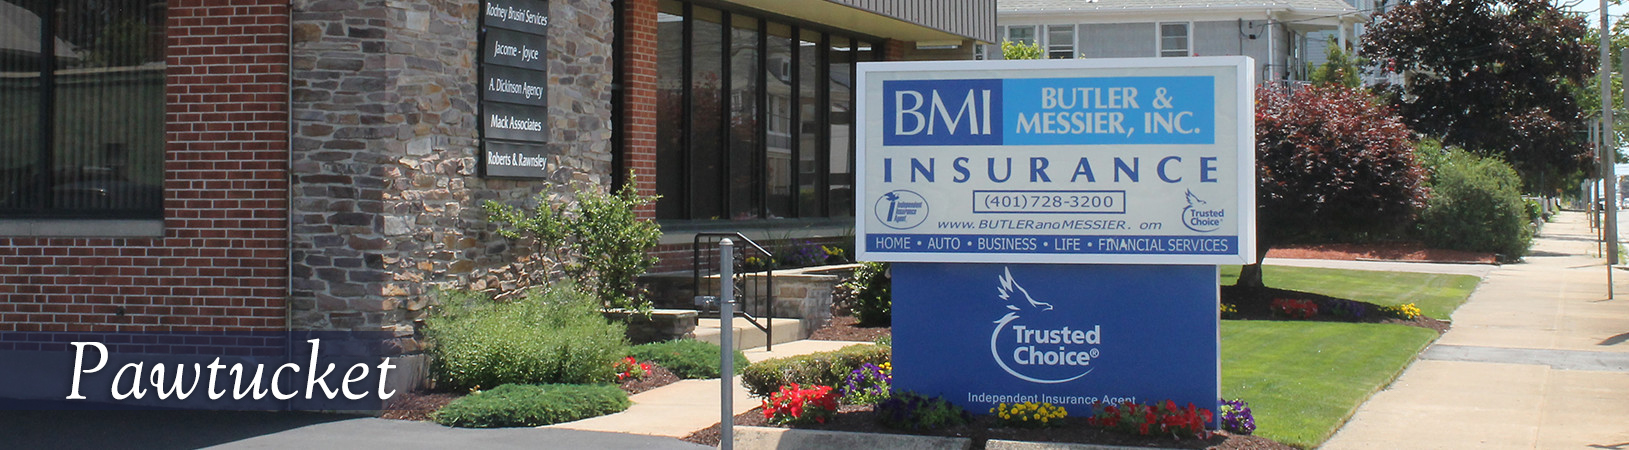 Proudly Insuring the People of Pawtucket and Beyond Since 1903